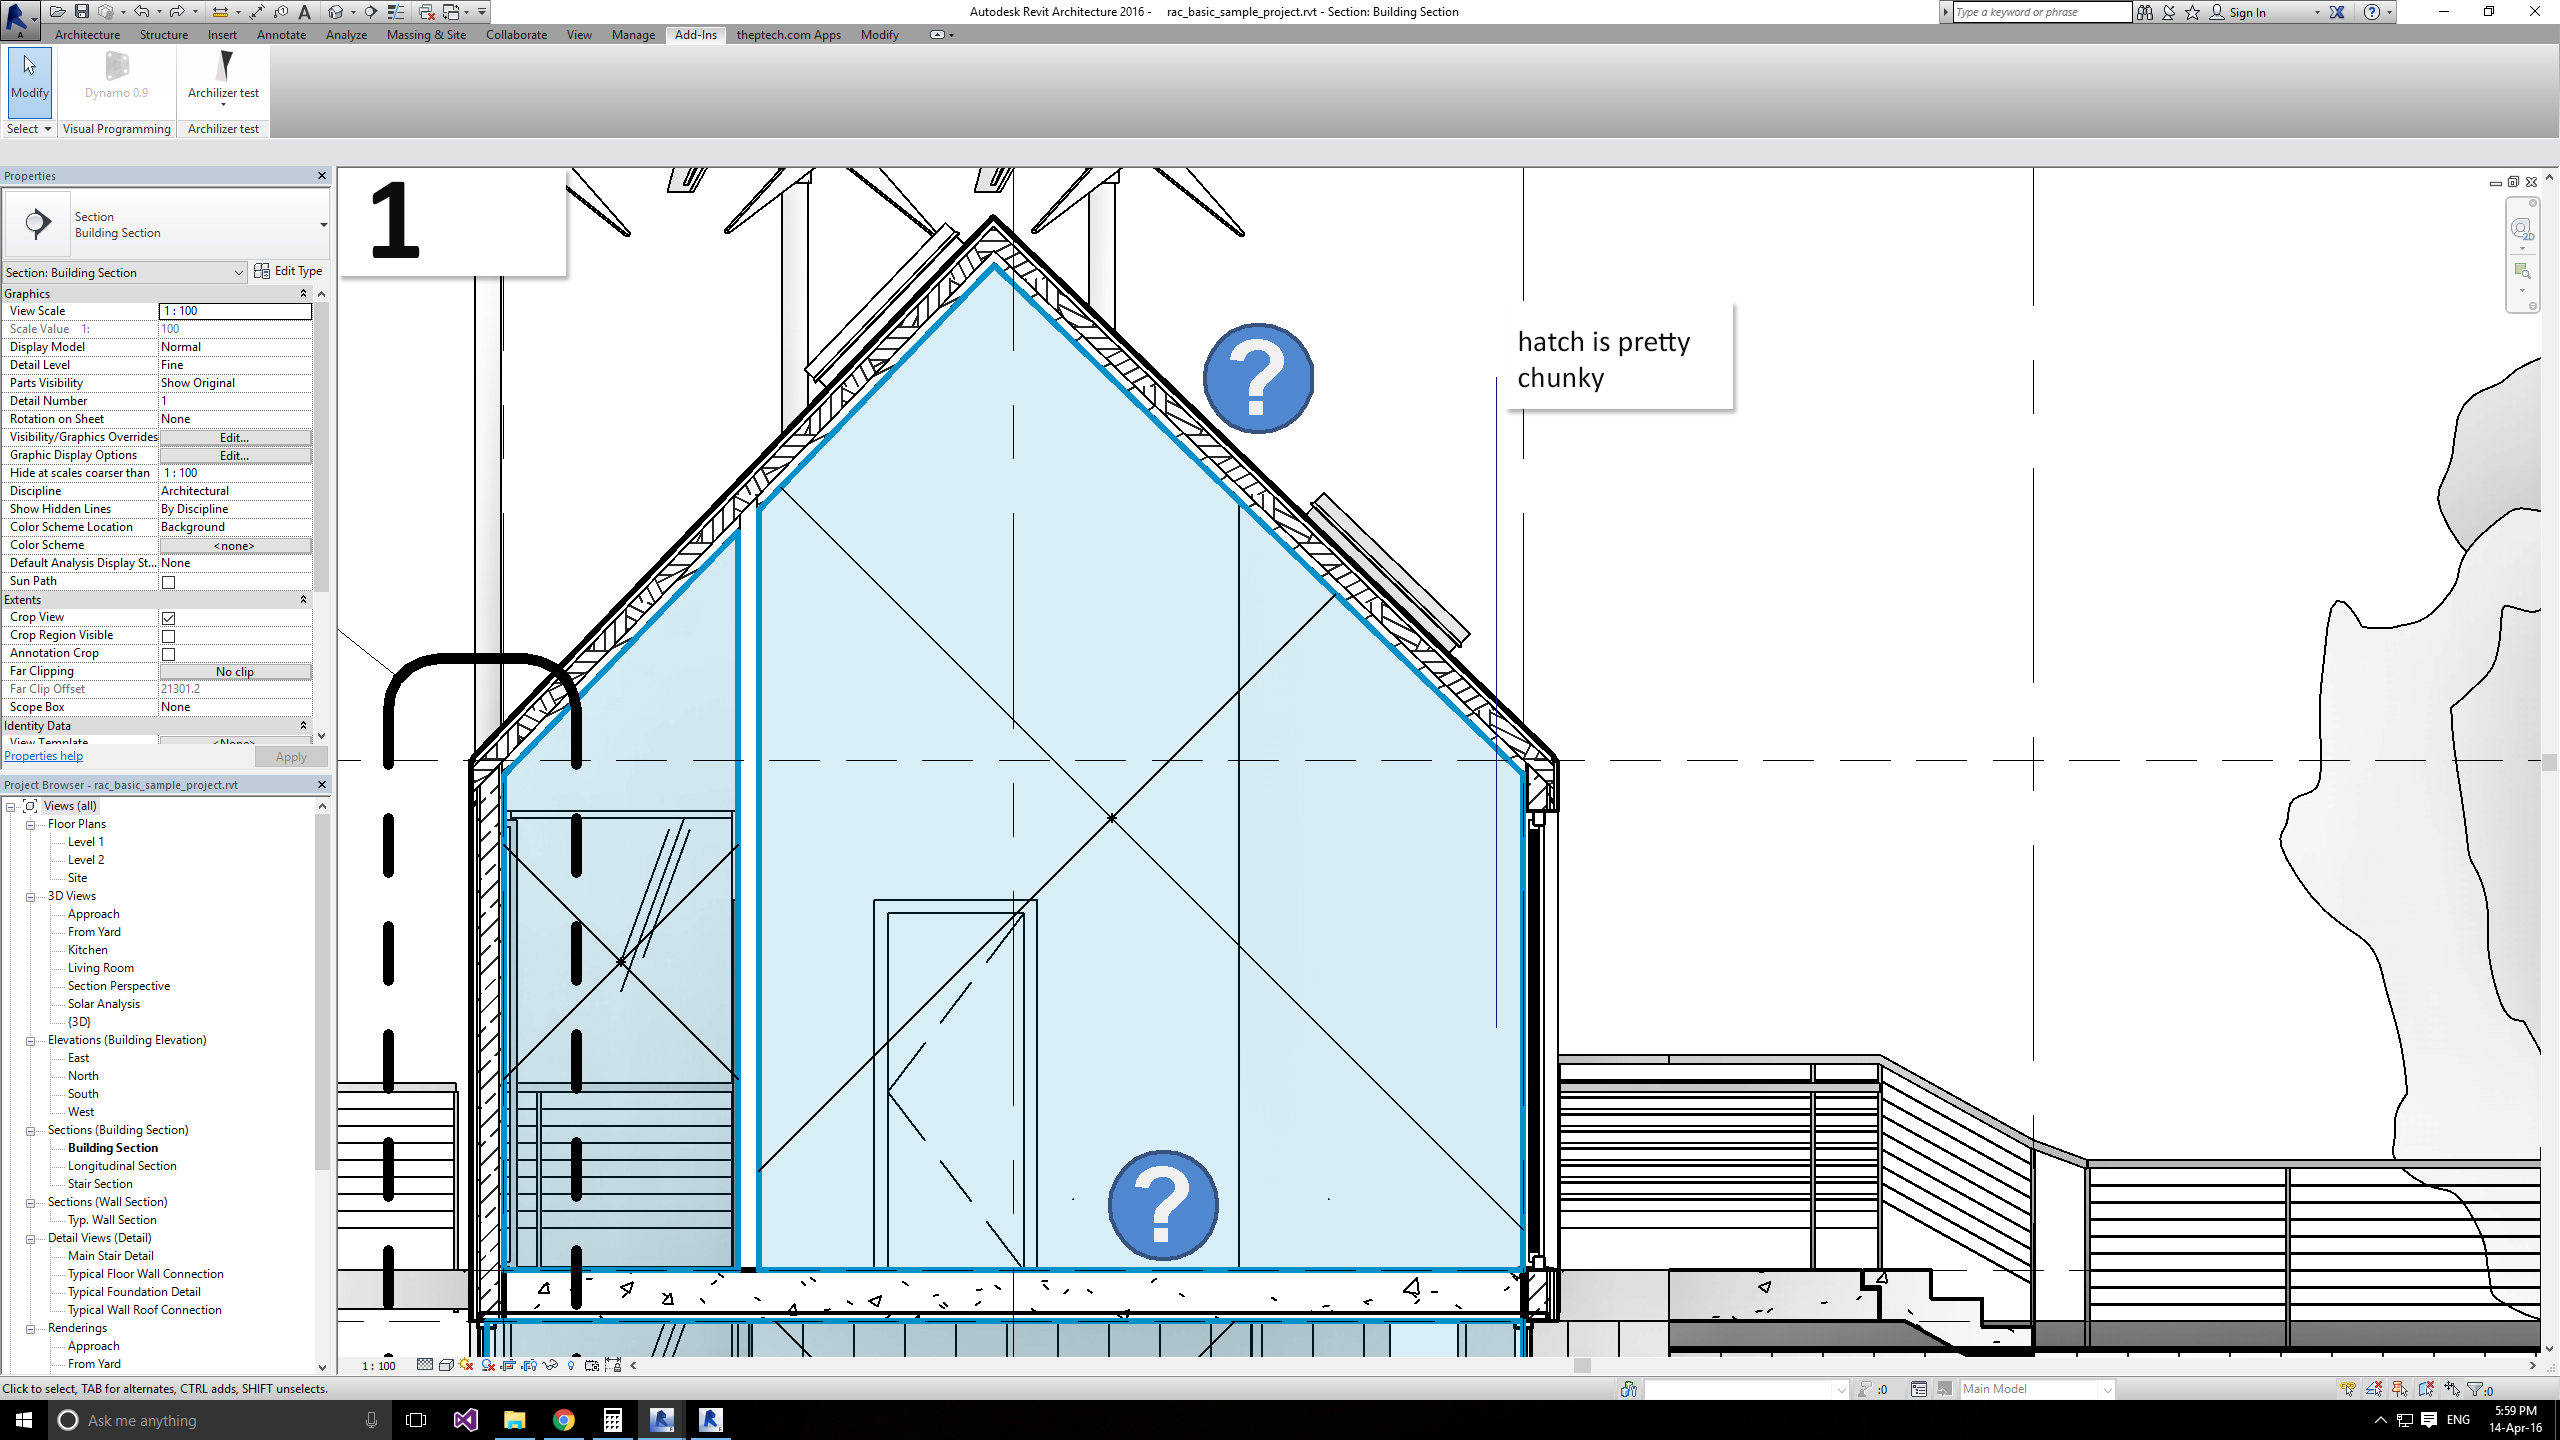 revit hatch patterns 1